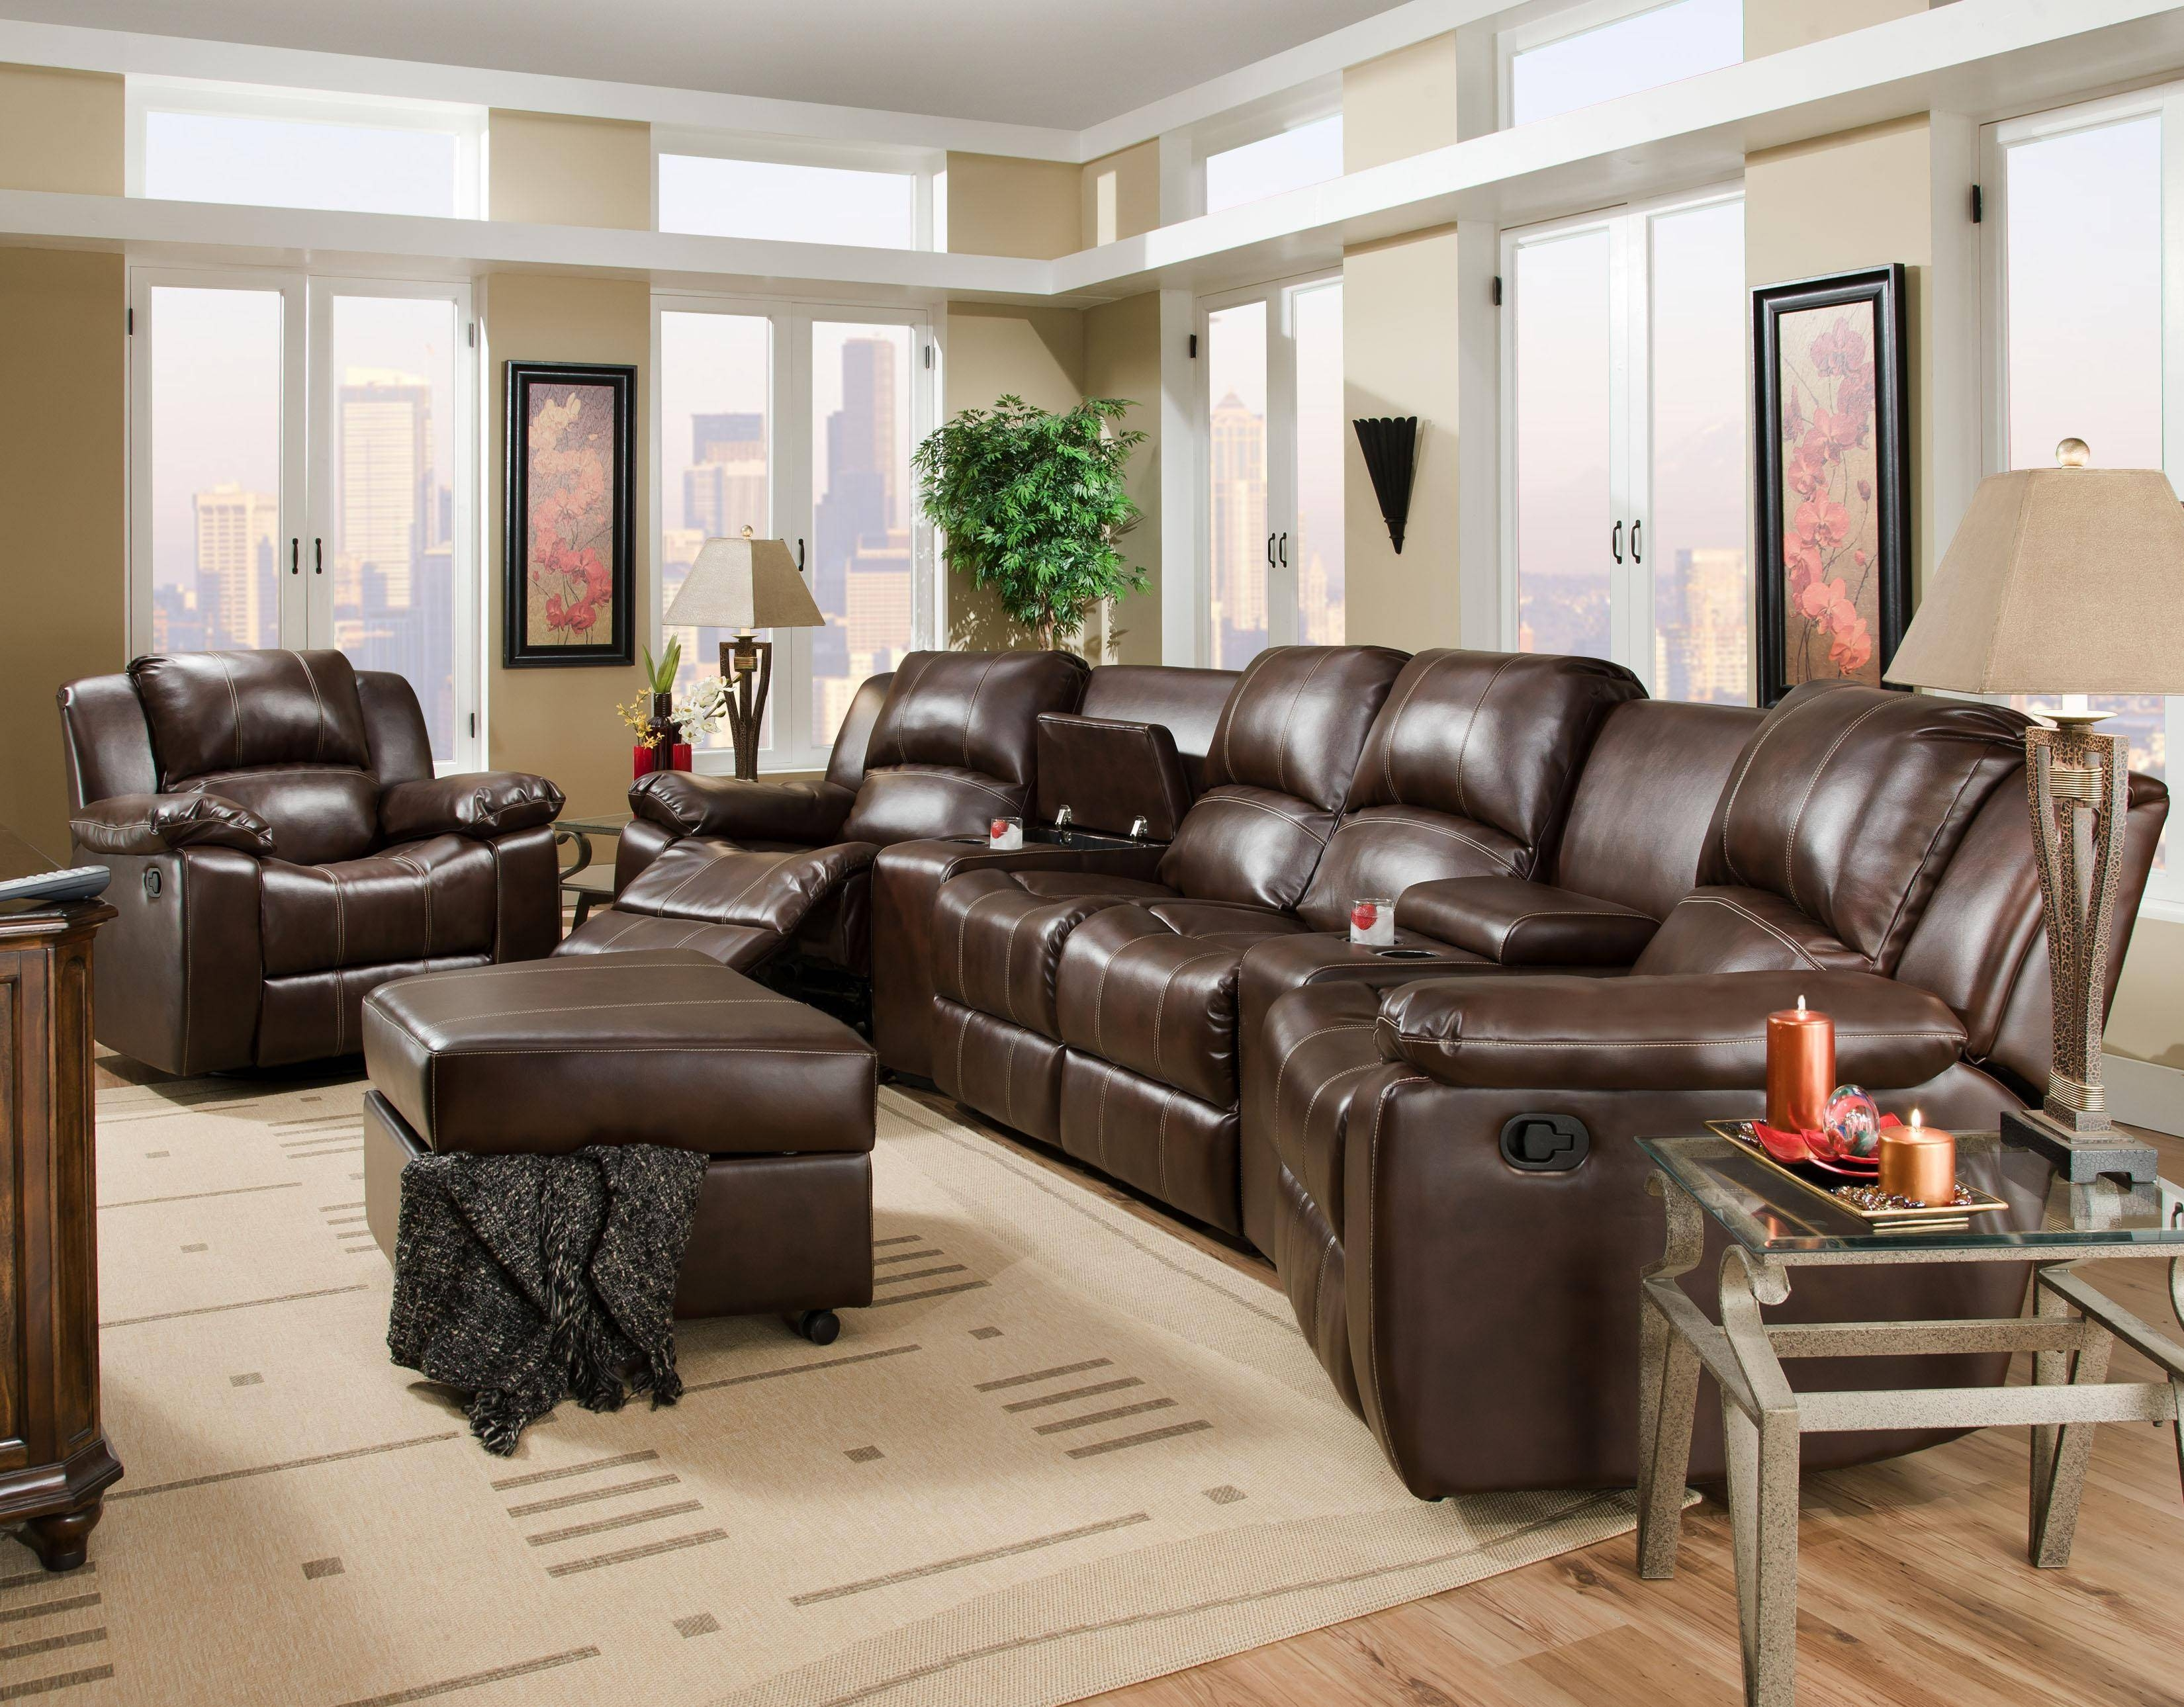 Brady Four Seat Reclining Theater Seating With Storage And pertaining to Corinthian Sectional Sofas (Image 2 of 30)